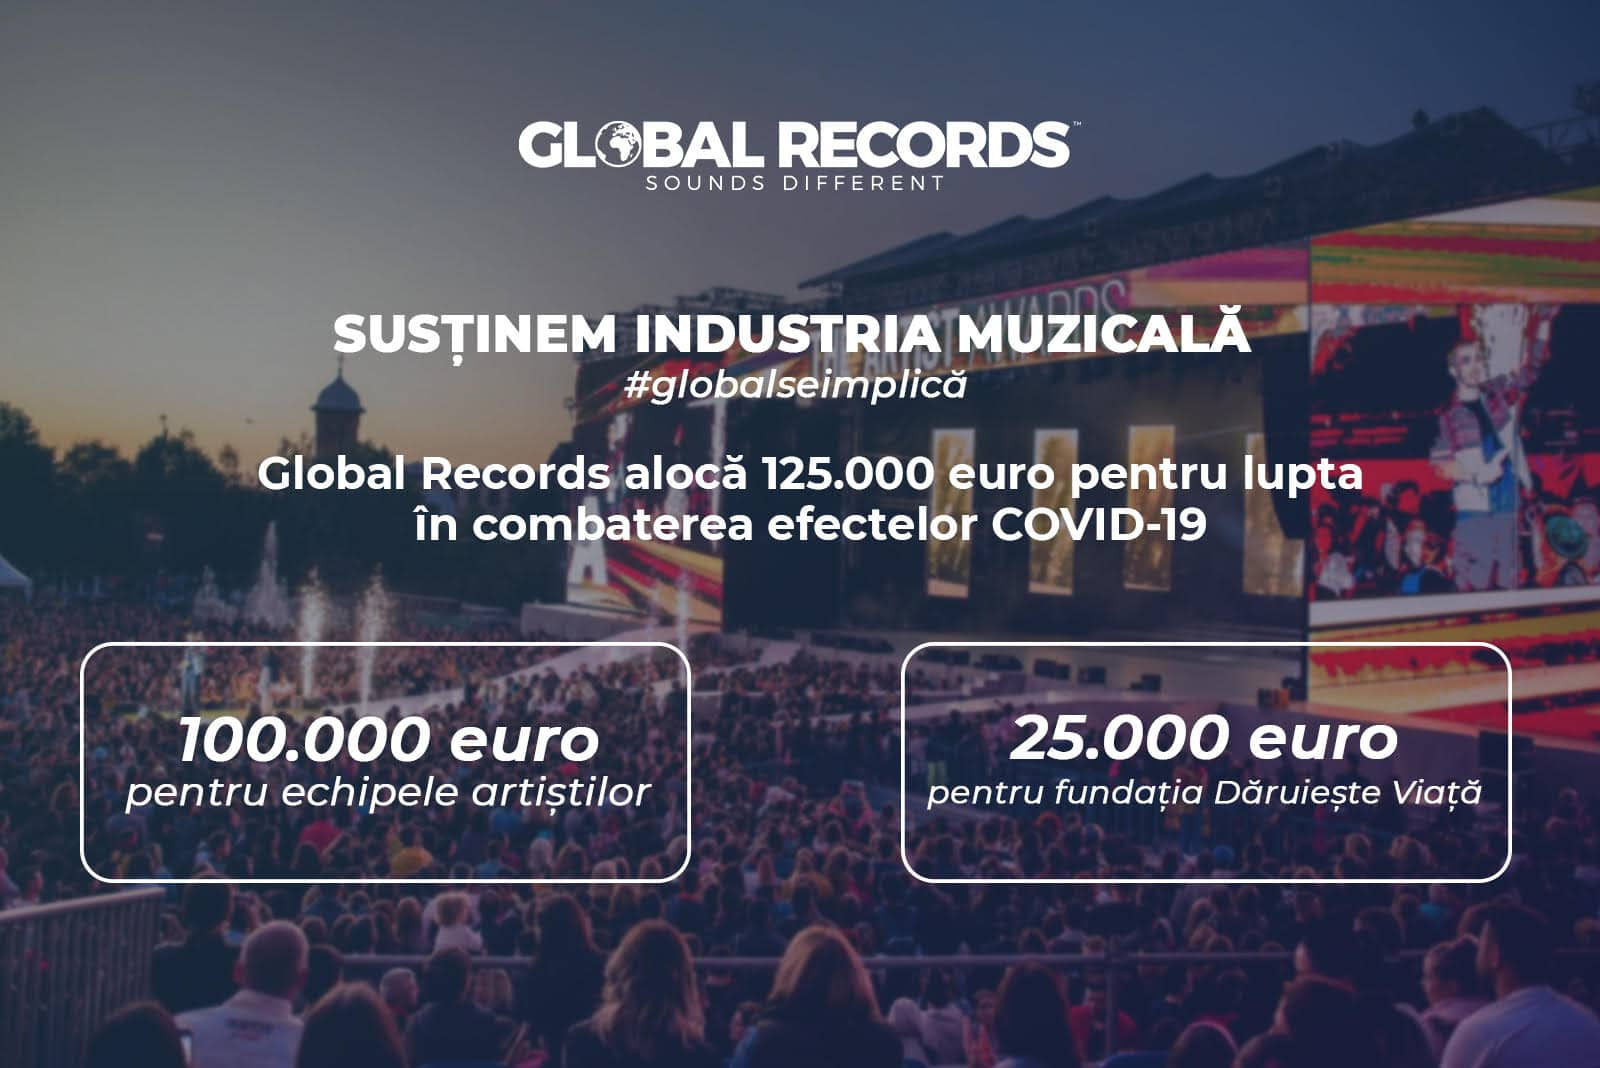 global-records-donatii